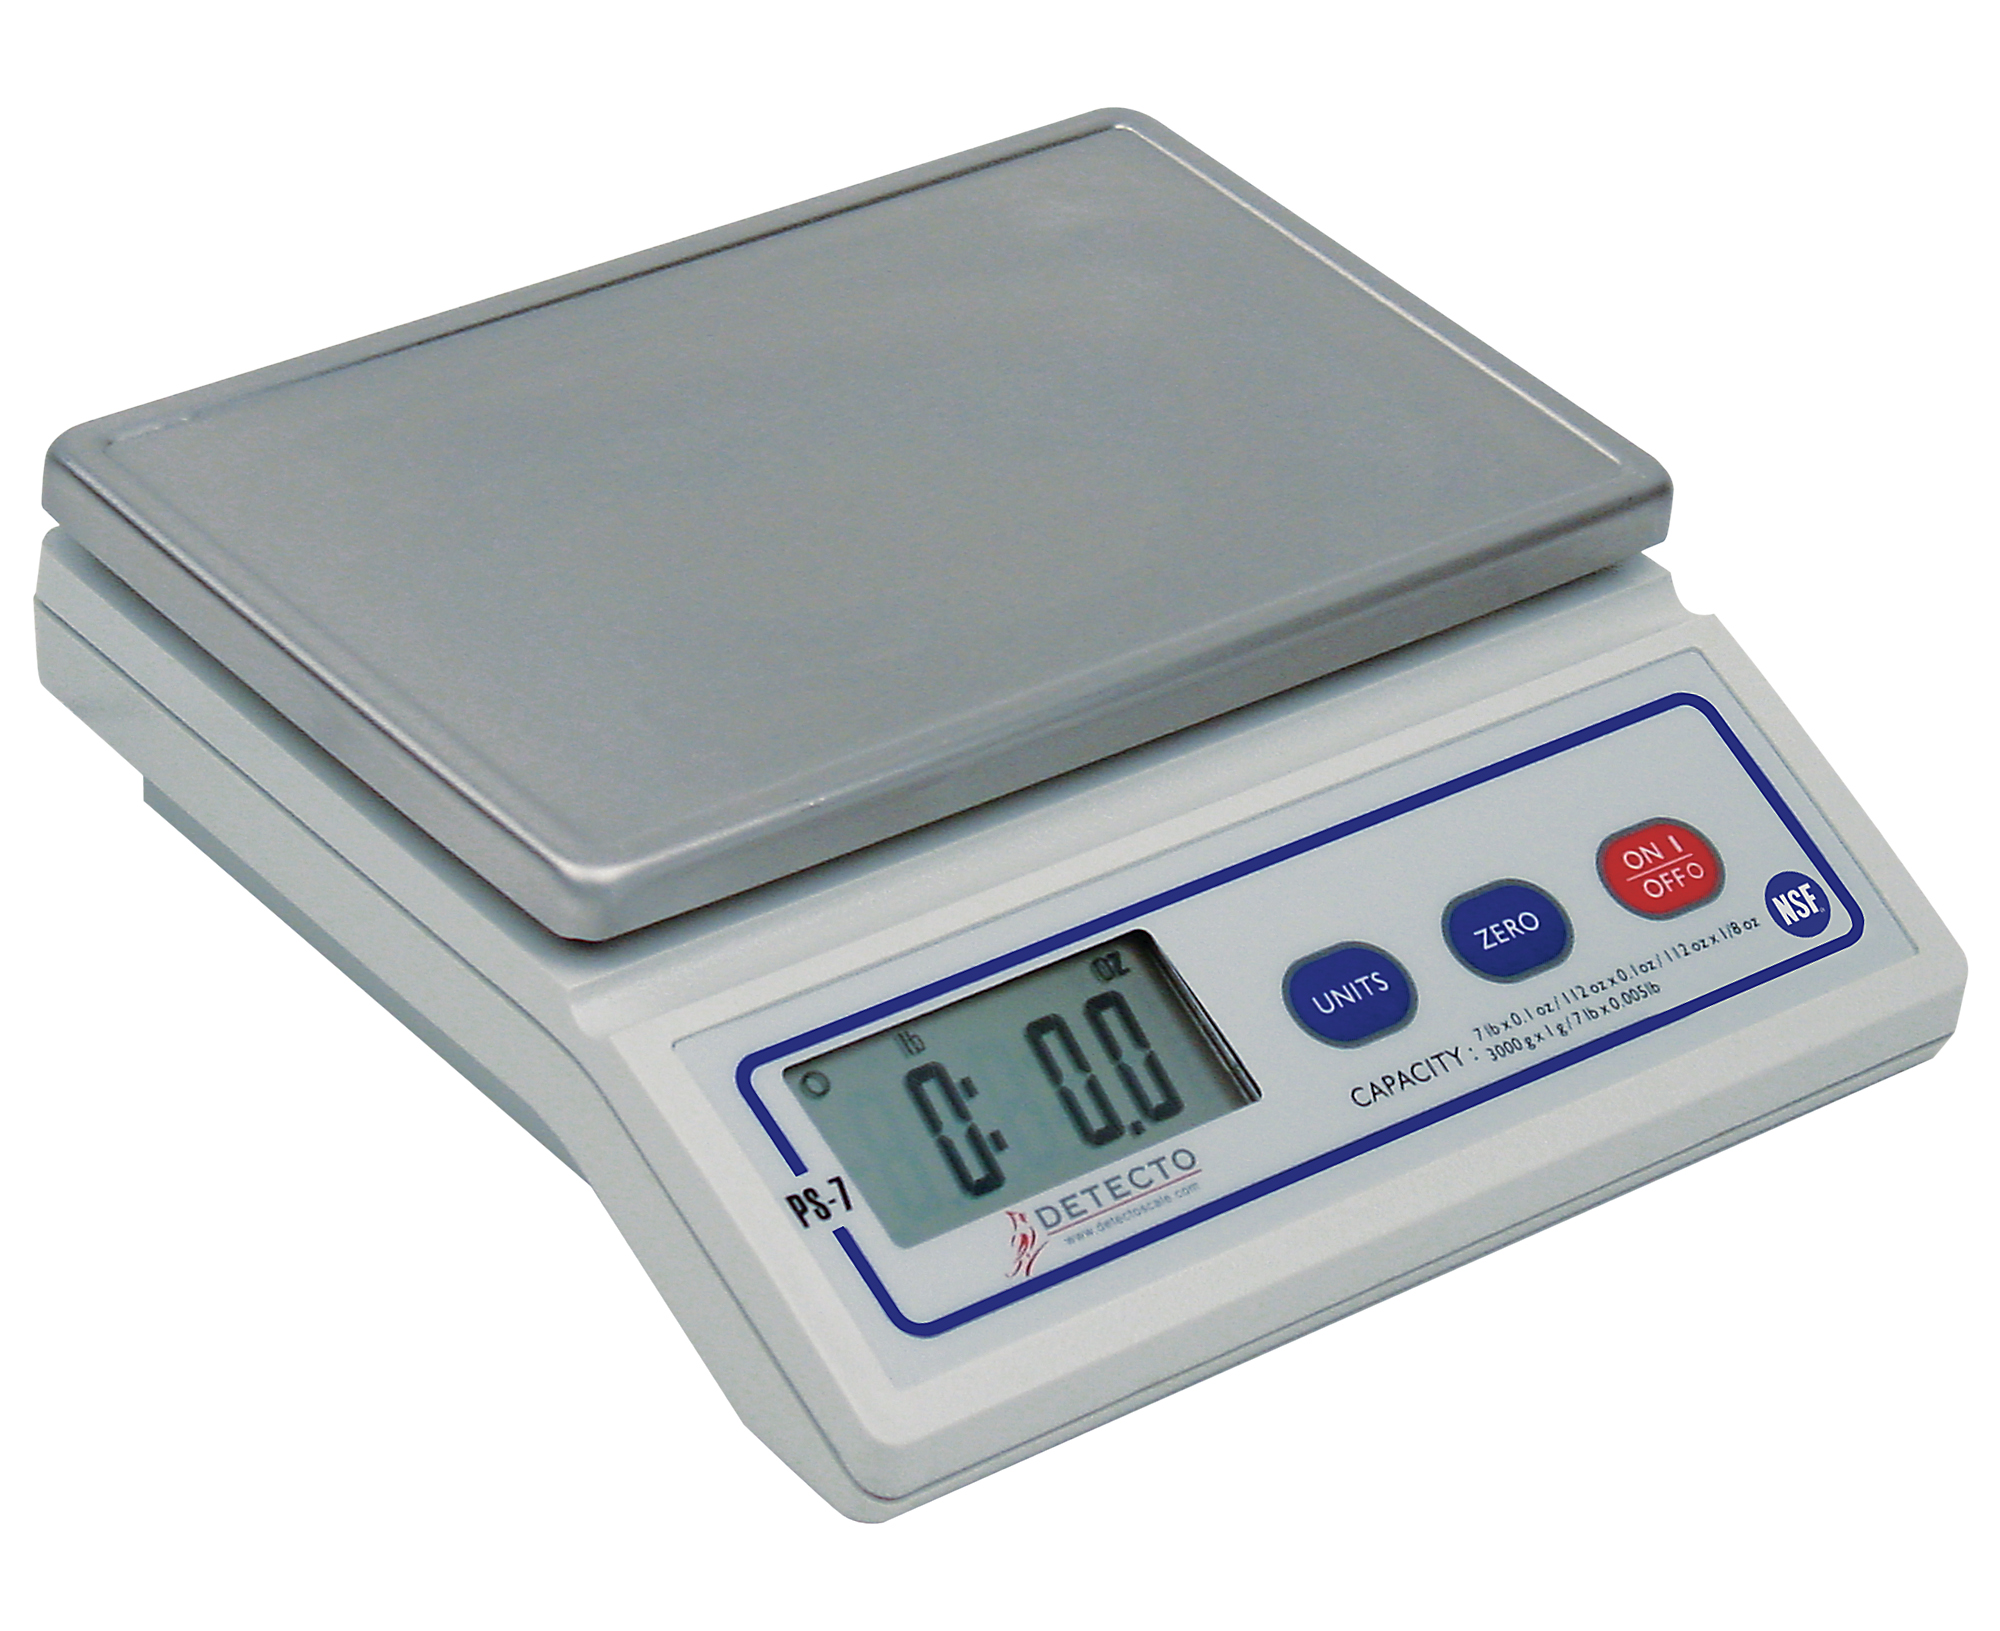 b78c41b696cb Details about Brecknell PS7, Electronic Postal Scale, 7 lb x 0.002 lb